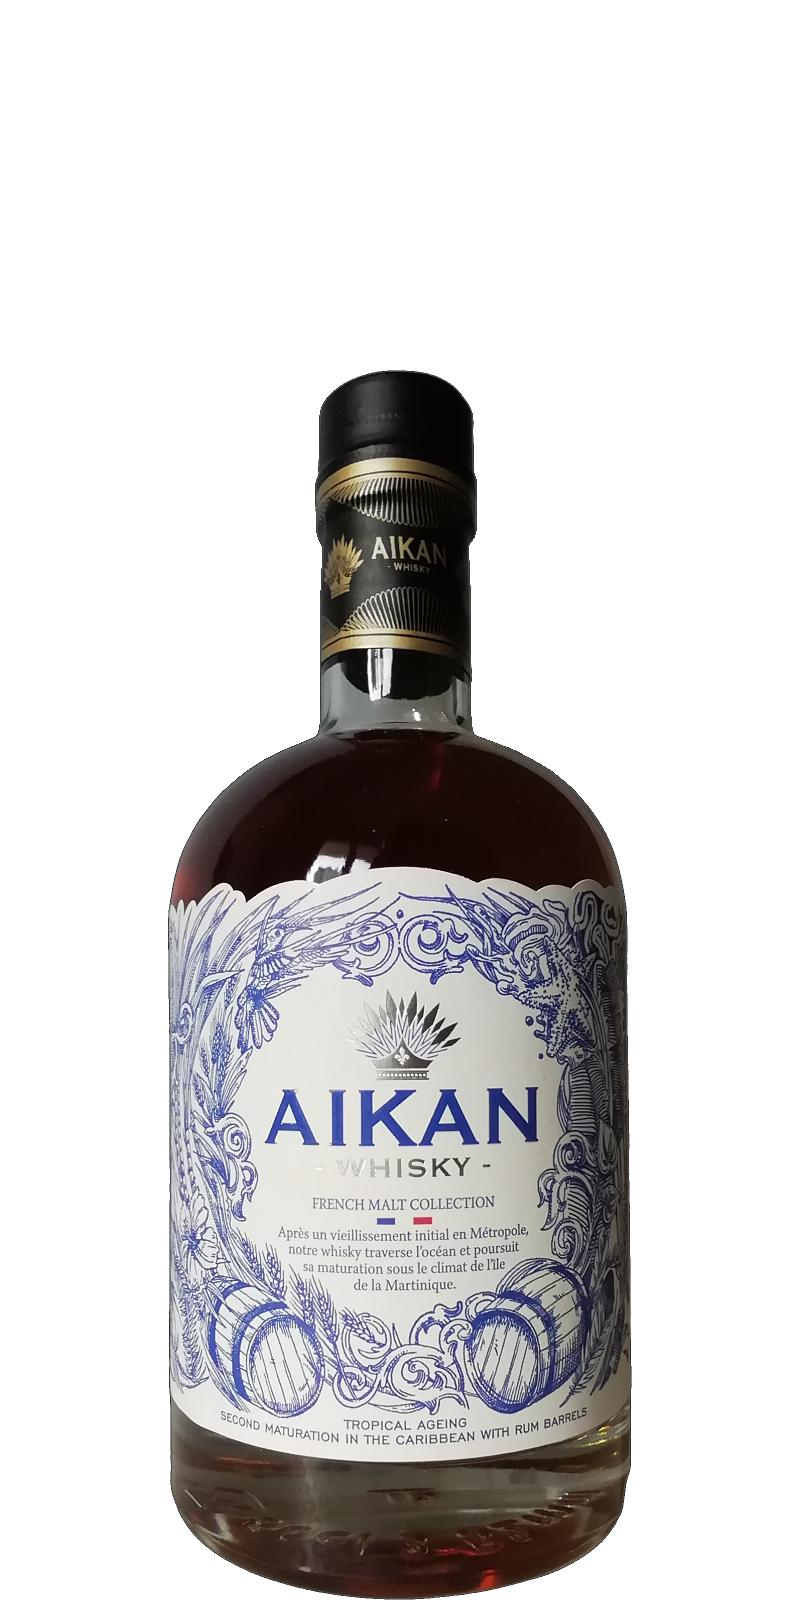 Aikan French malt collection